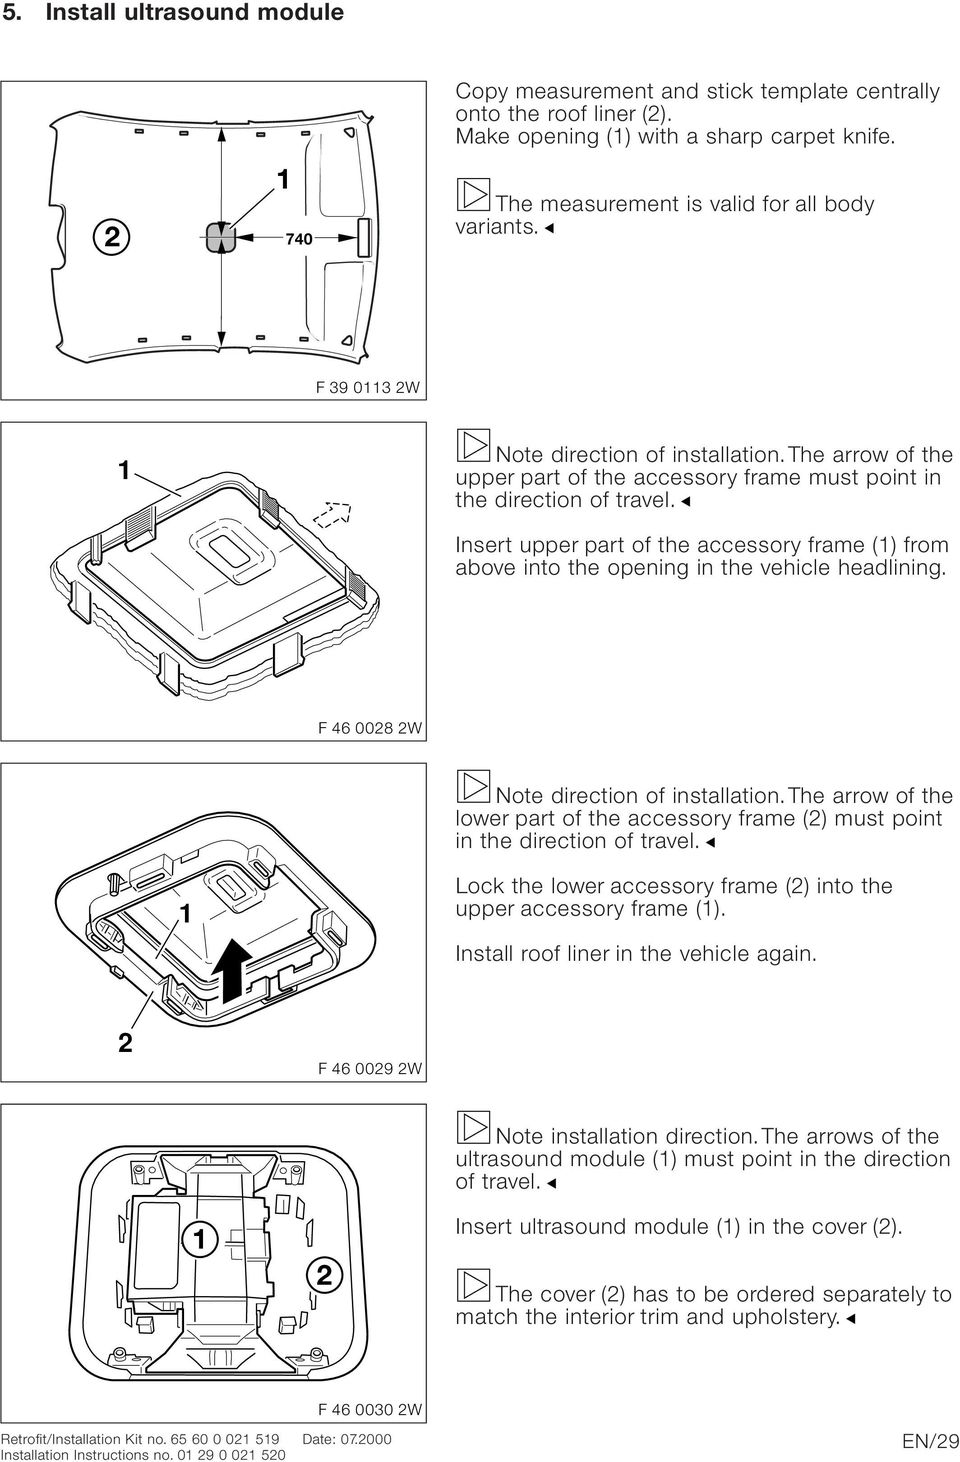 Bmw Parts And Accessories Installation Instructions Pdf 2011 R1200rt Wiring Diagram Insert Upper Part Of The Accessory Frame From Above Into Opening In